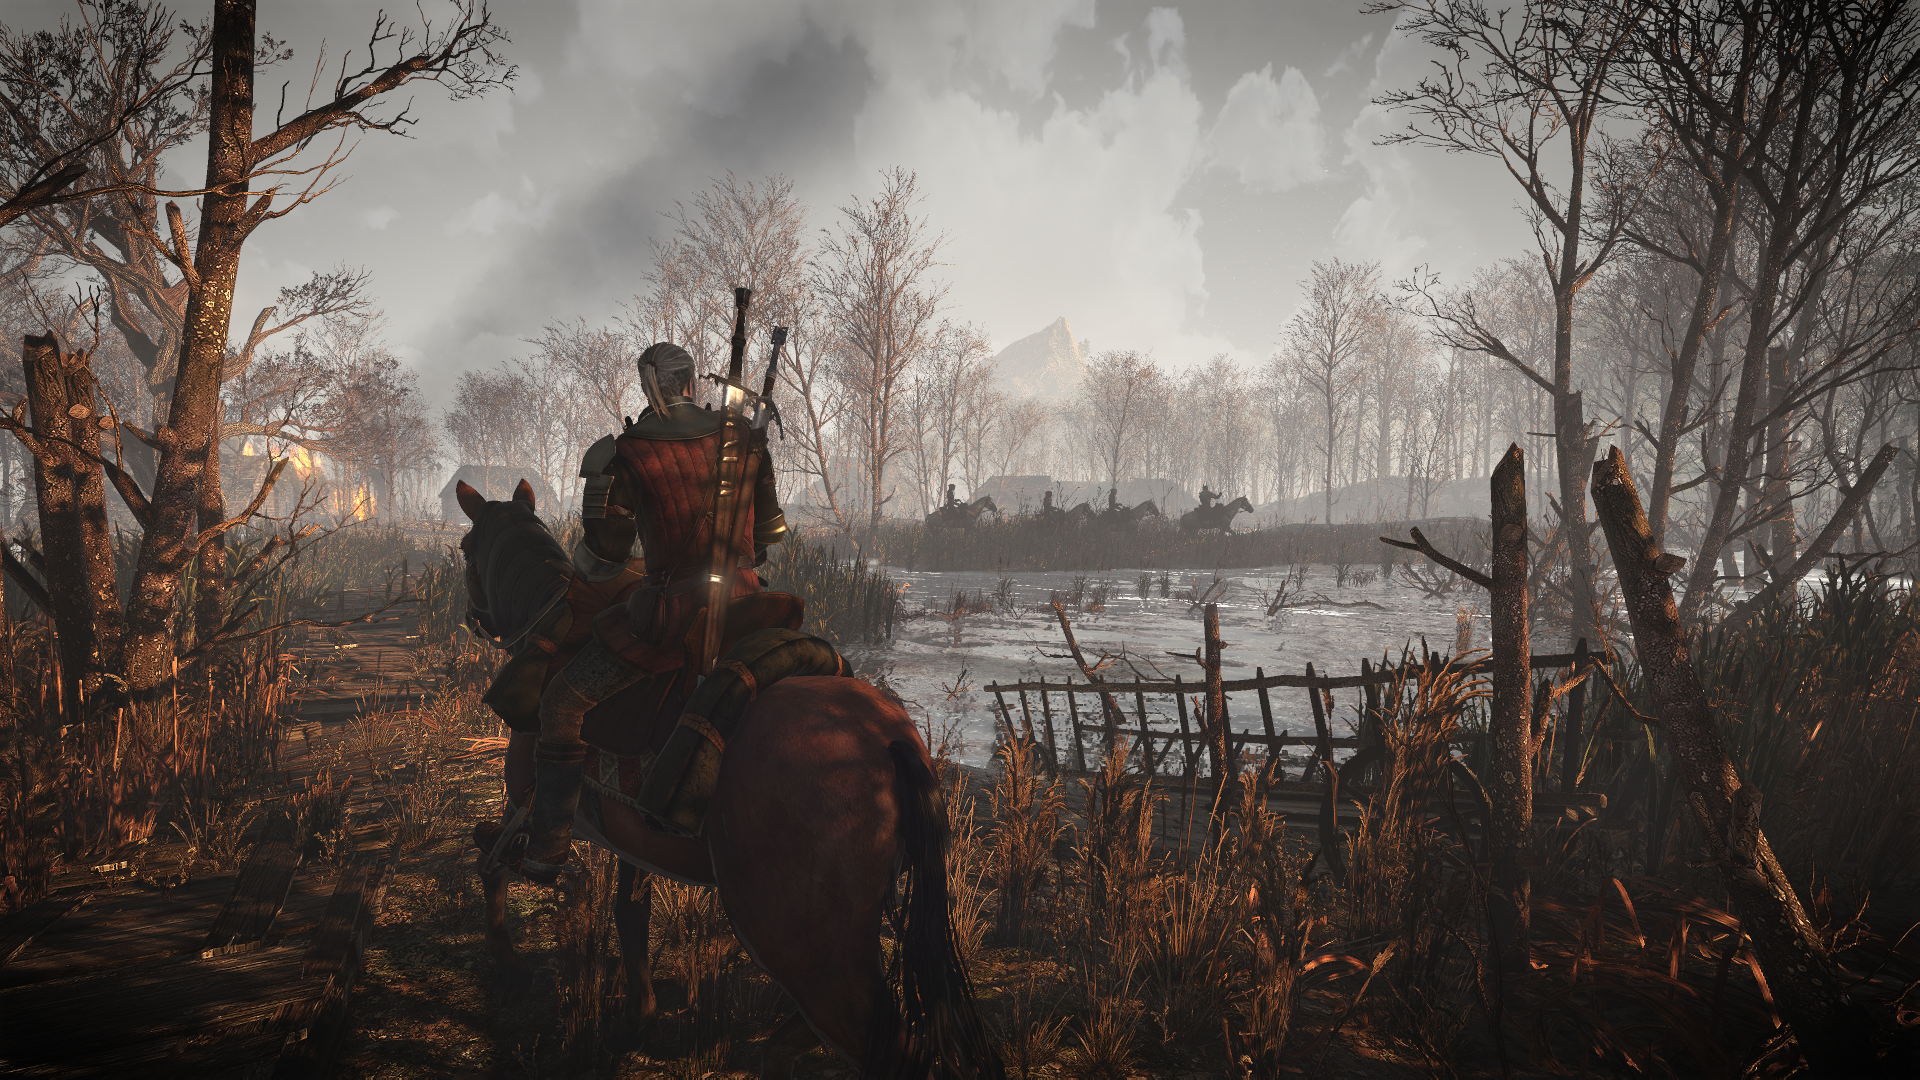 Witcher 3 Wallpaper Hd: The Witcher 3 Wild Hunt Game Wallpapers